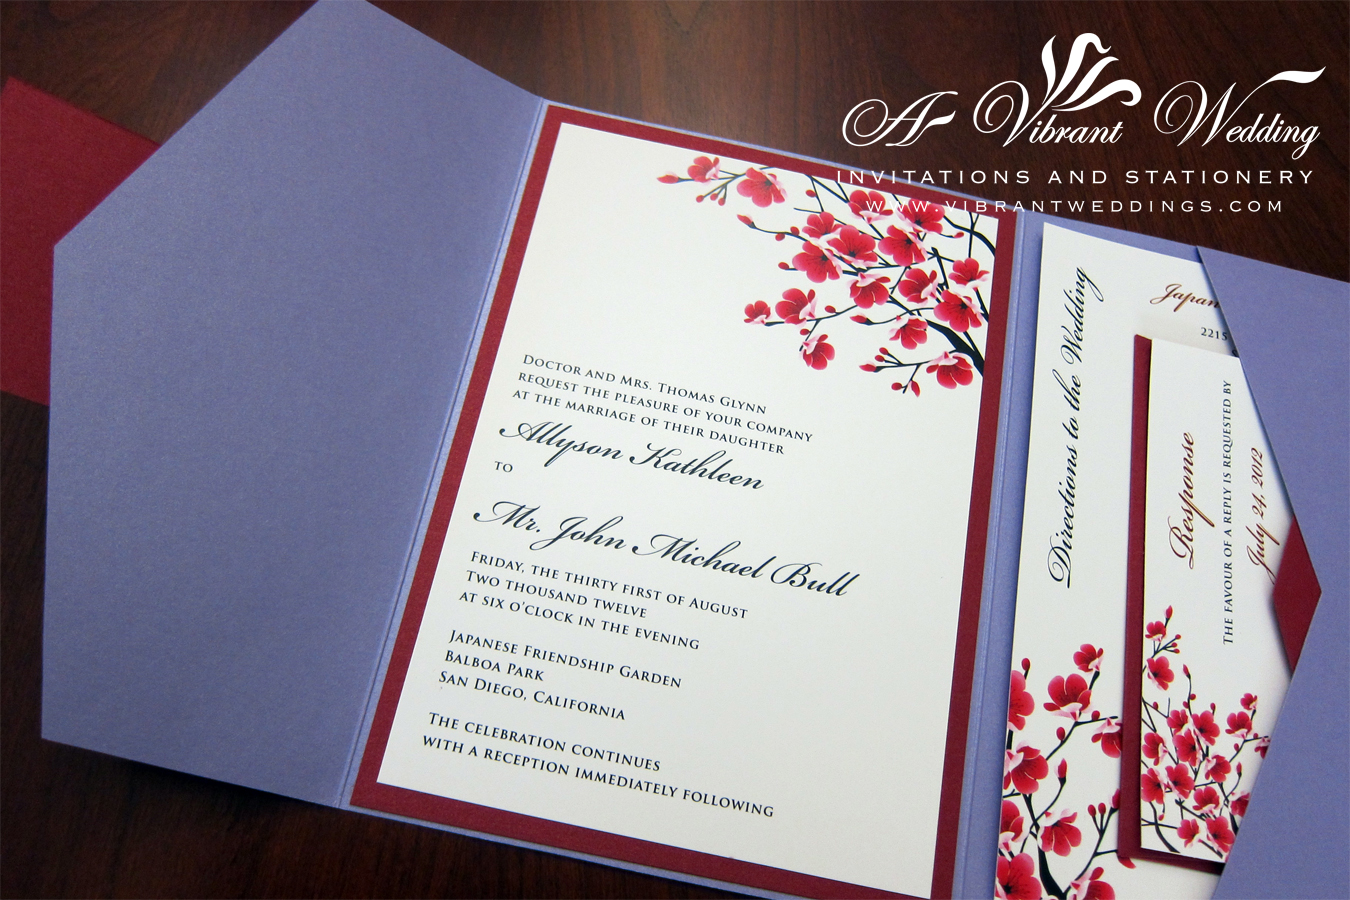 Wedding Invitation Picture: Lavender Wedding Invitation